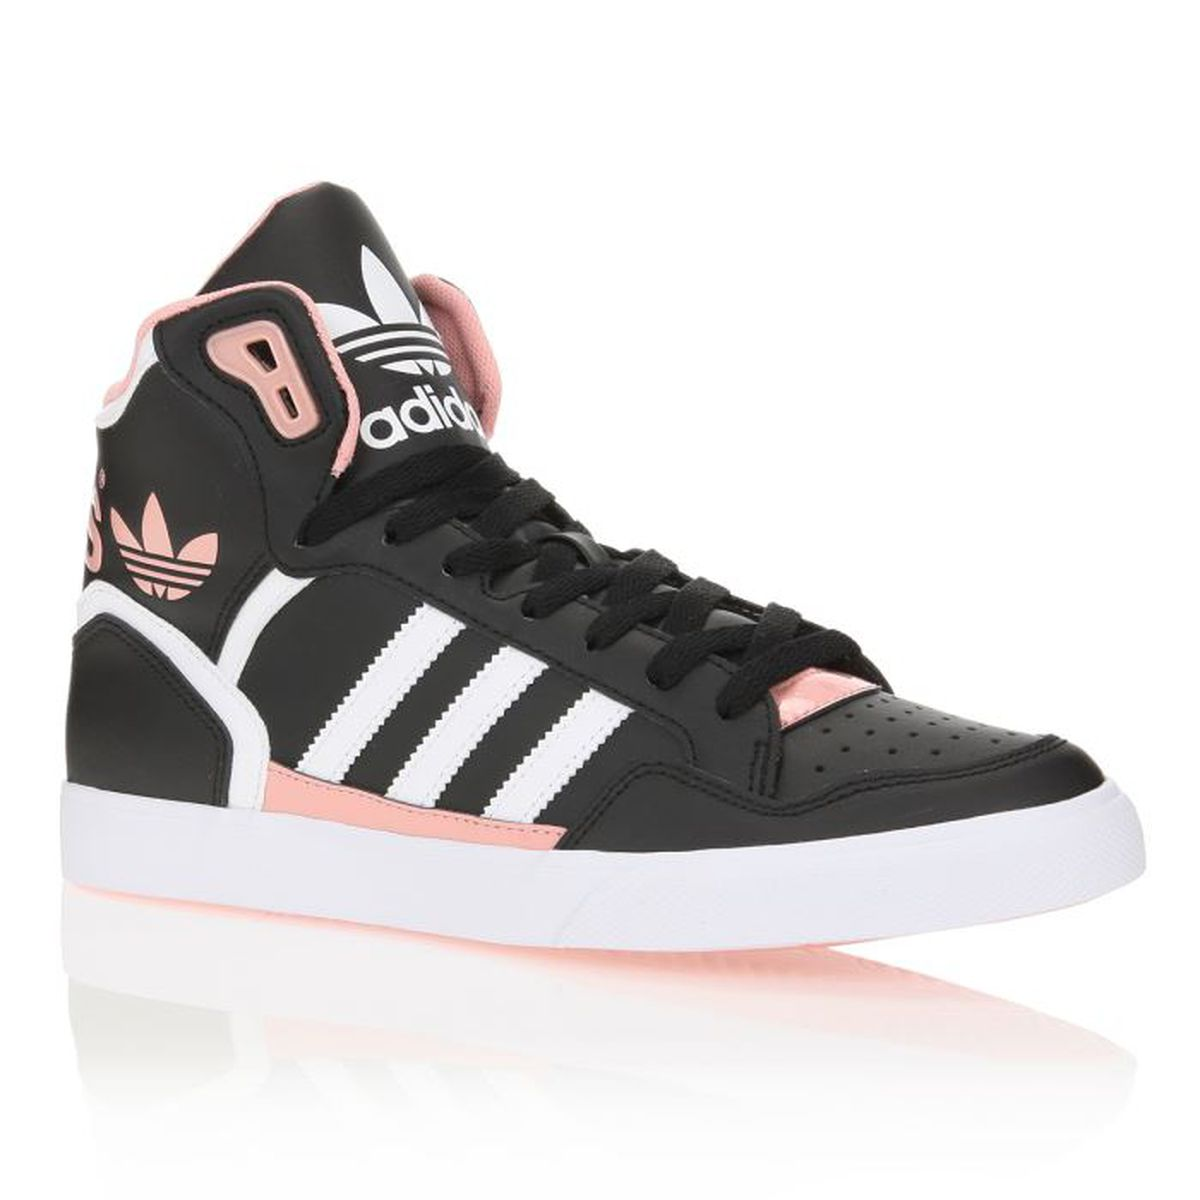 adidas originals baskets extaball femme femme noir blanc et rose achat vente adidas baskets. Black Bedroom Furniture Sets. Home Design Ideas